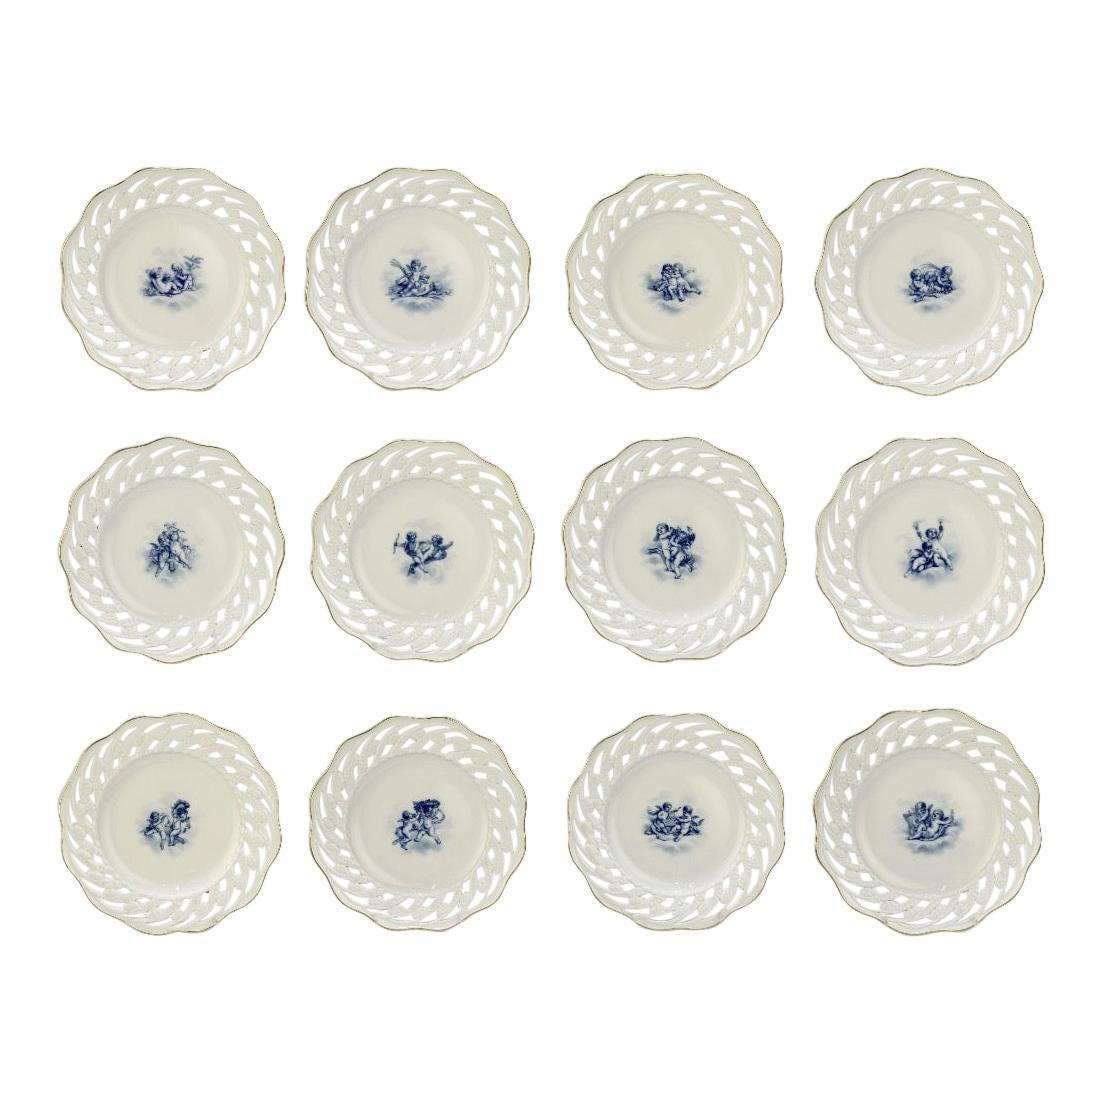 Set of 12 Antique Meissen Porcelain Reticulated Cabinet Plates with Cherubs